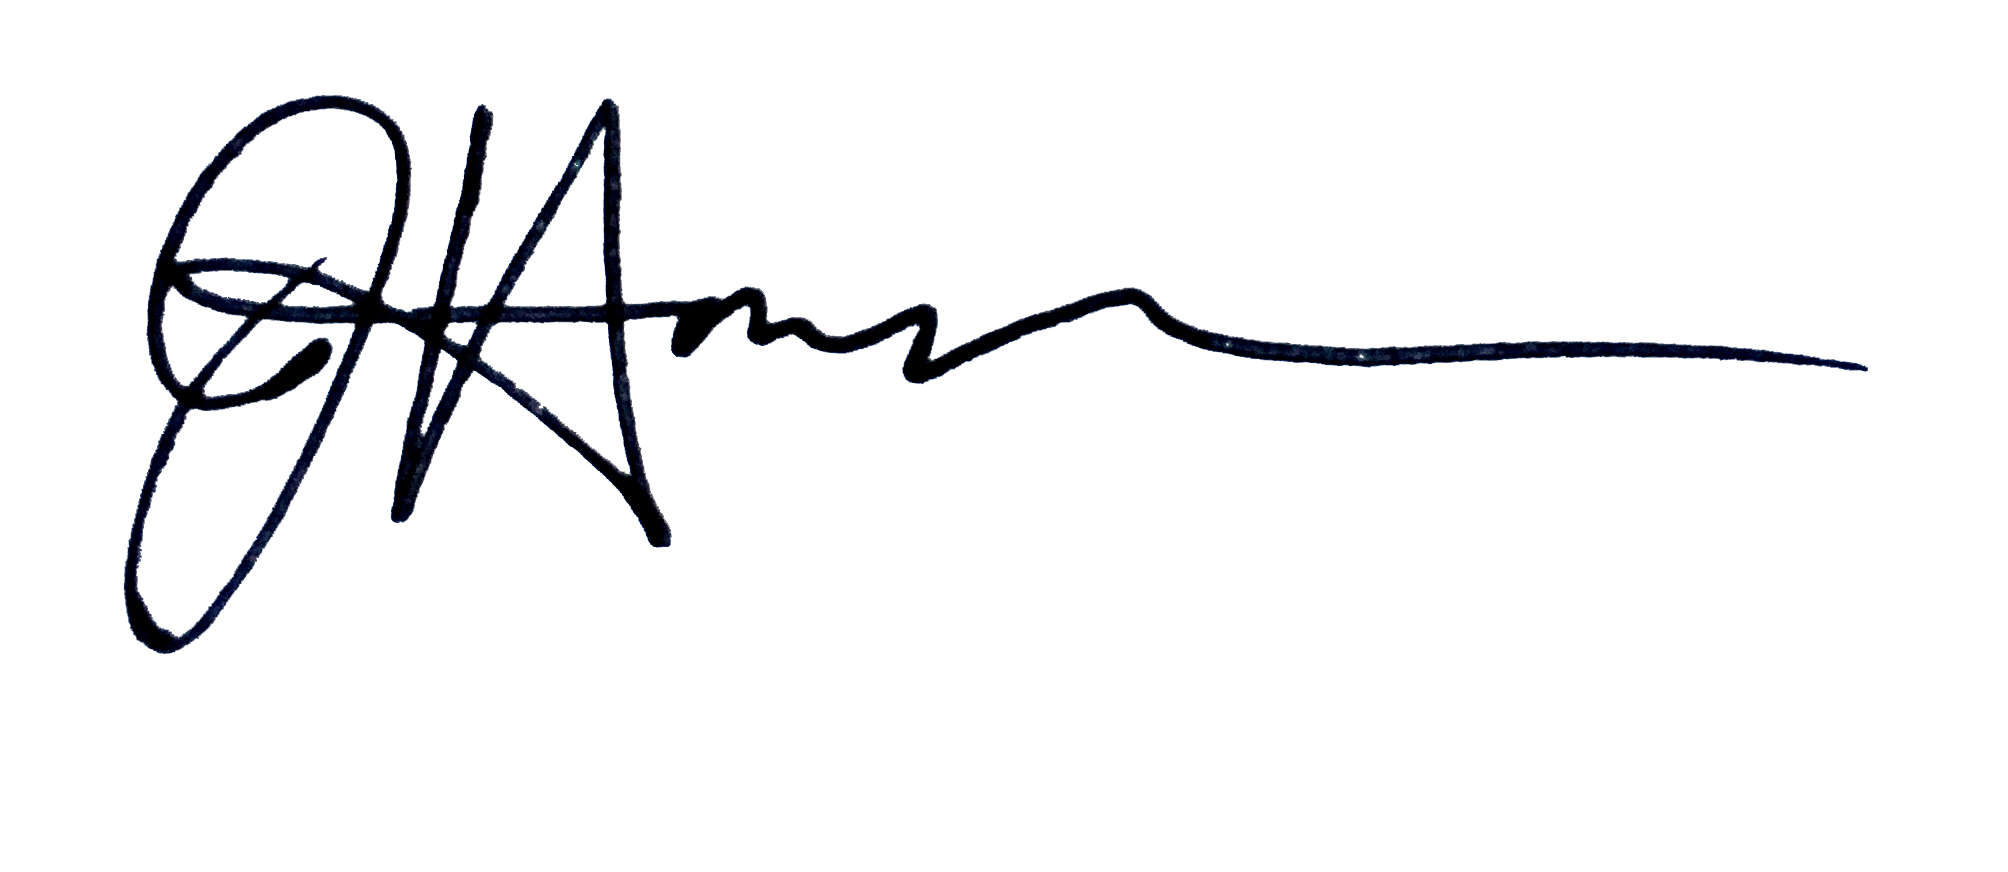 JacobHamman_Signature.png